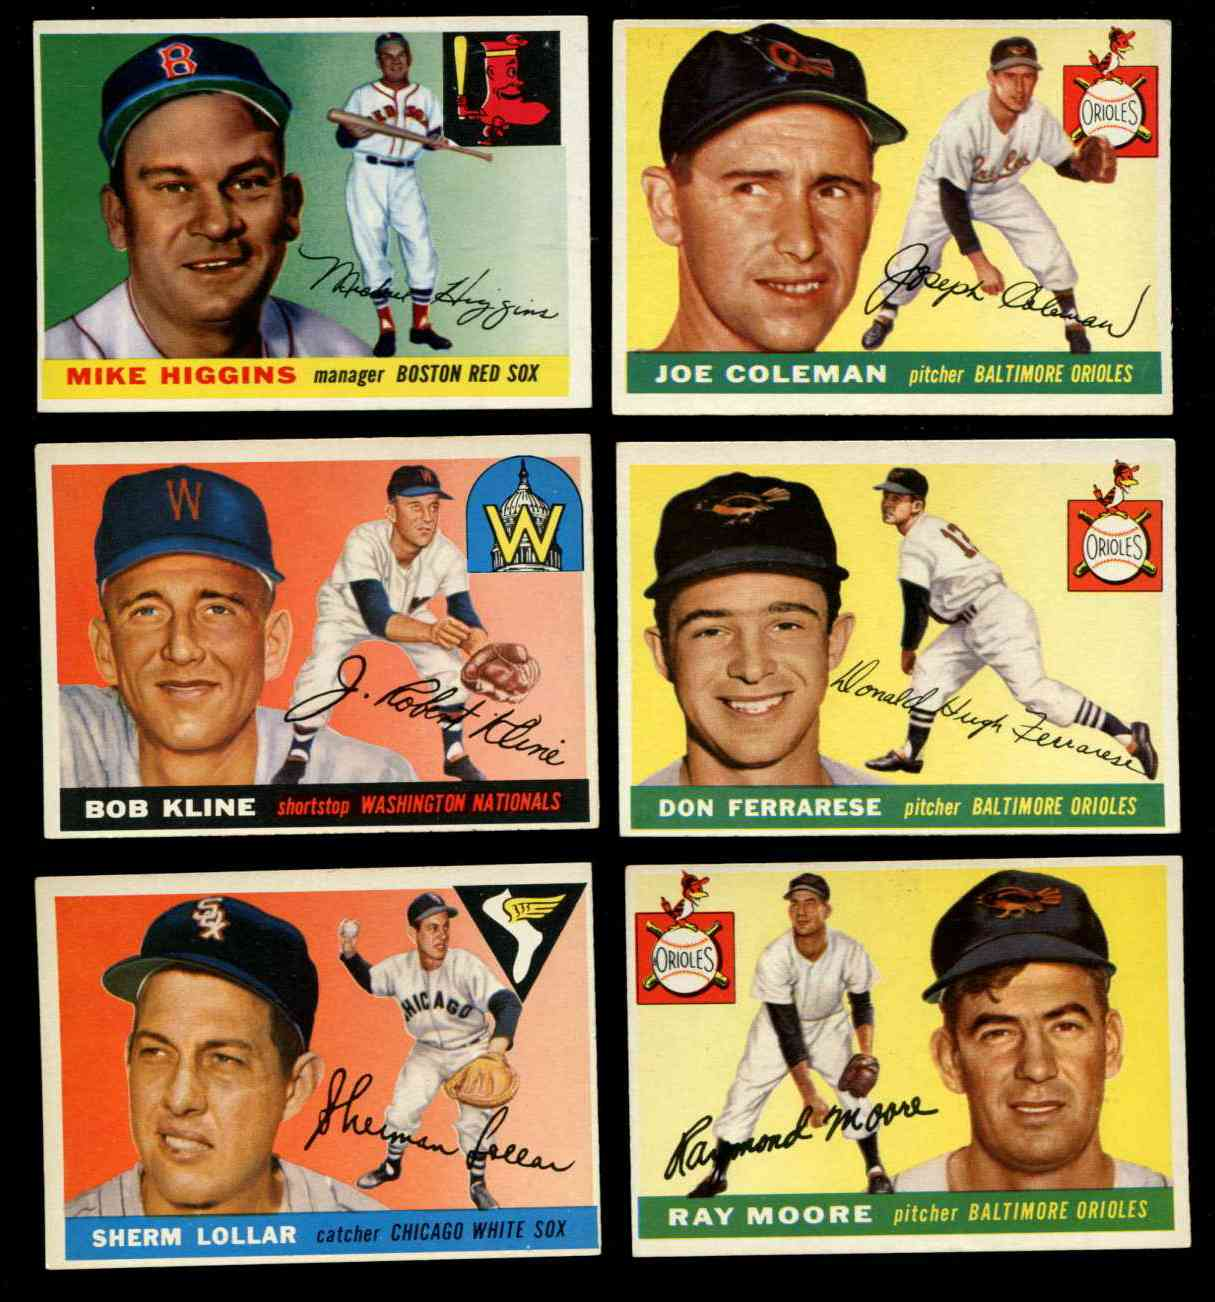 1955 Topps #150 Mike Higgins [#x] (Red Sox Manager) Baseball cards value